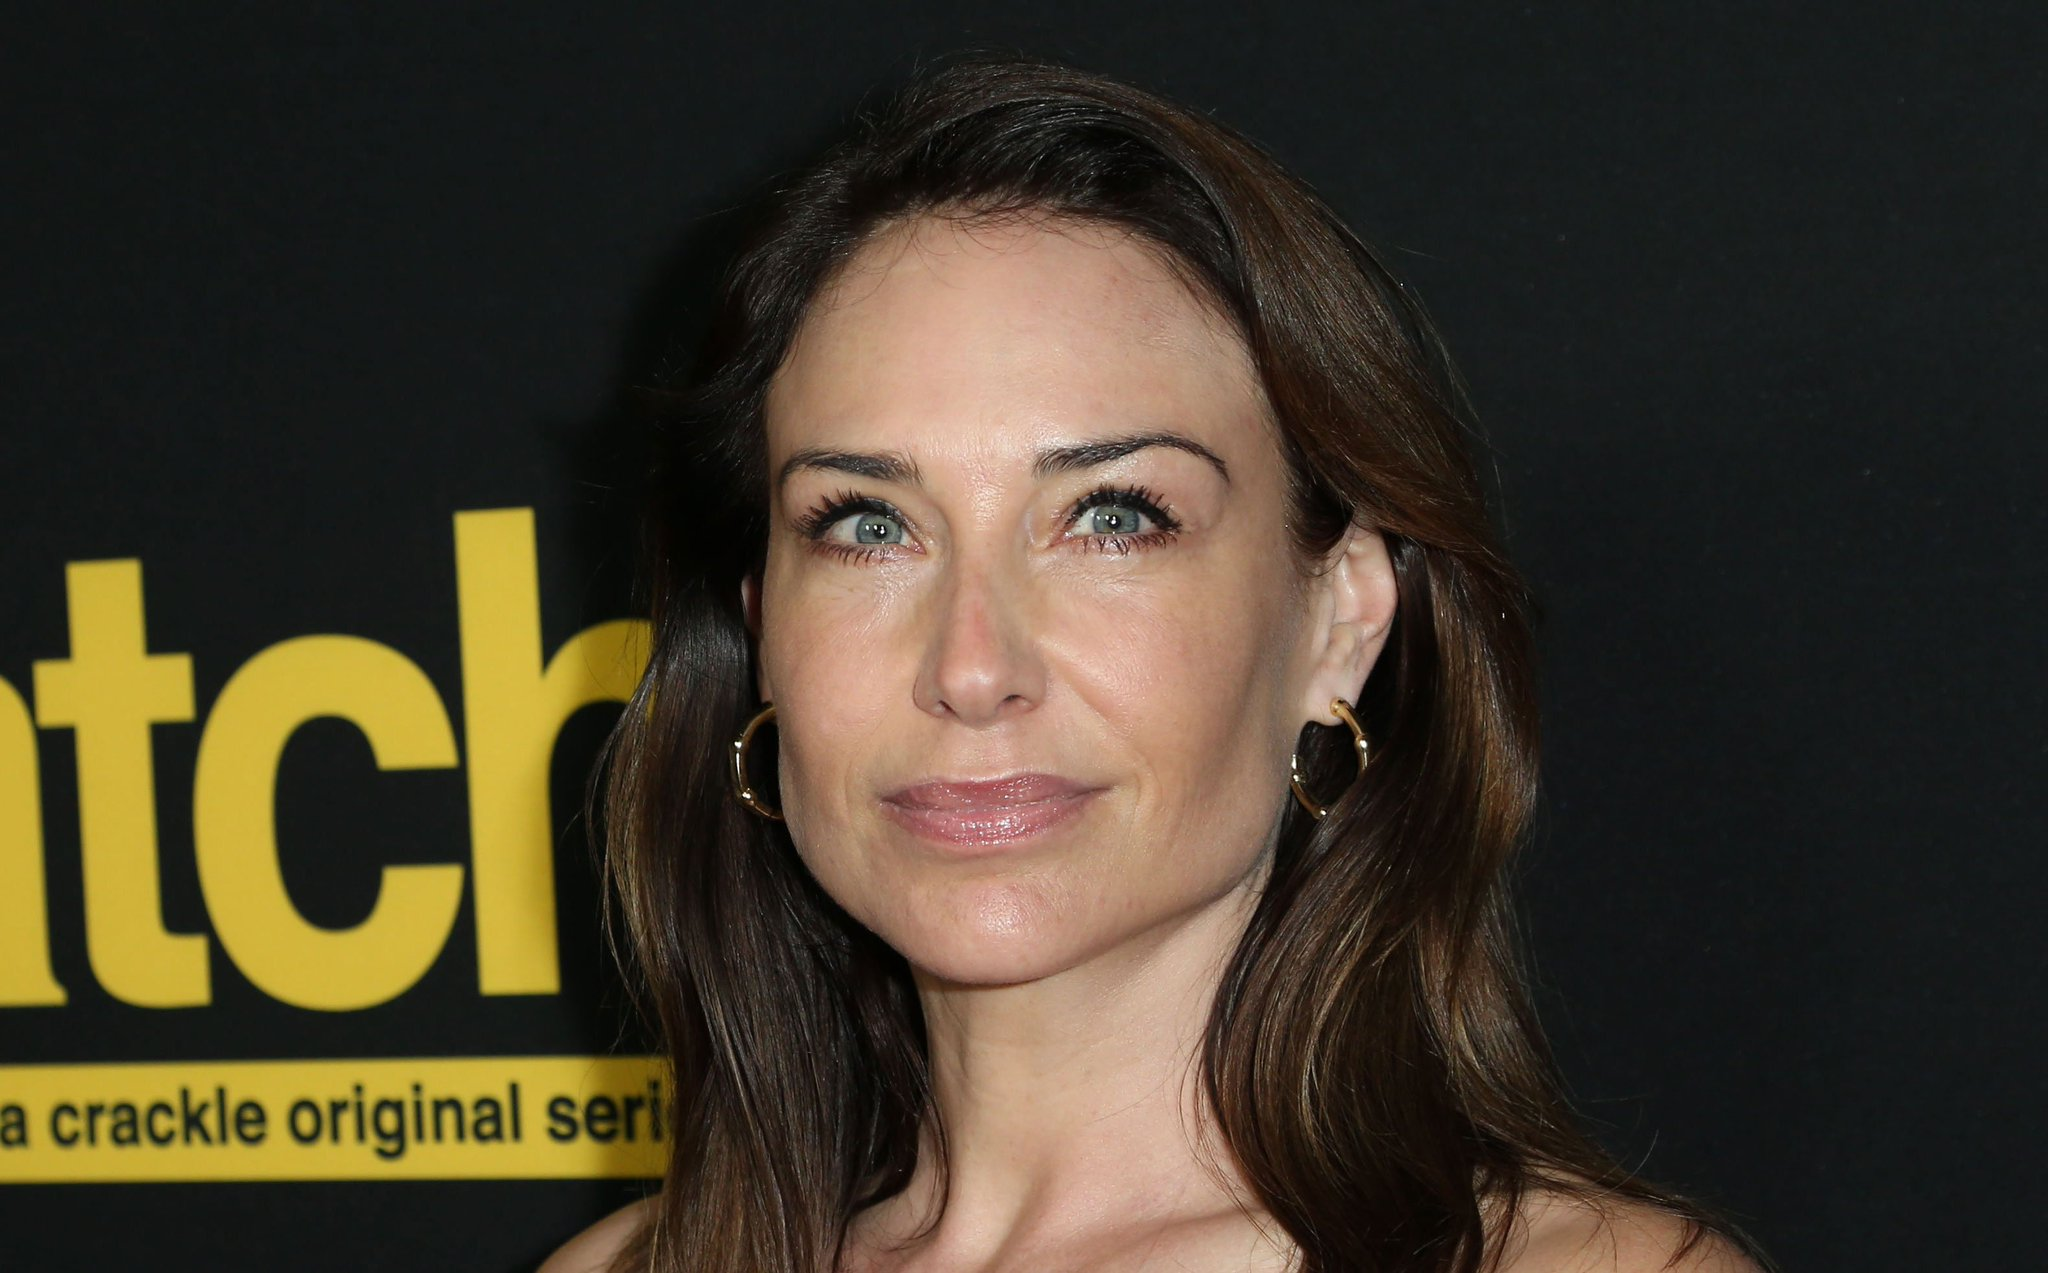 .@ClaireAForlani says she 'escaped' Harvey Weinstein 5 times https://t.co/Qal84479yd https://t.co/TAxruICsXD